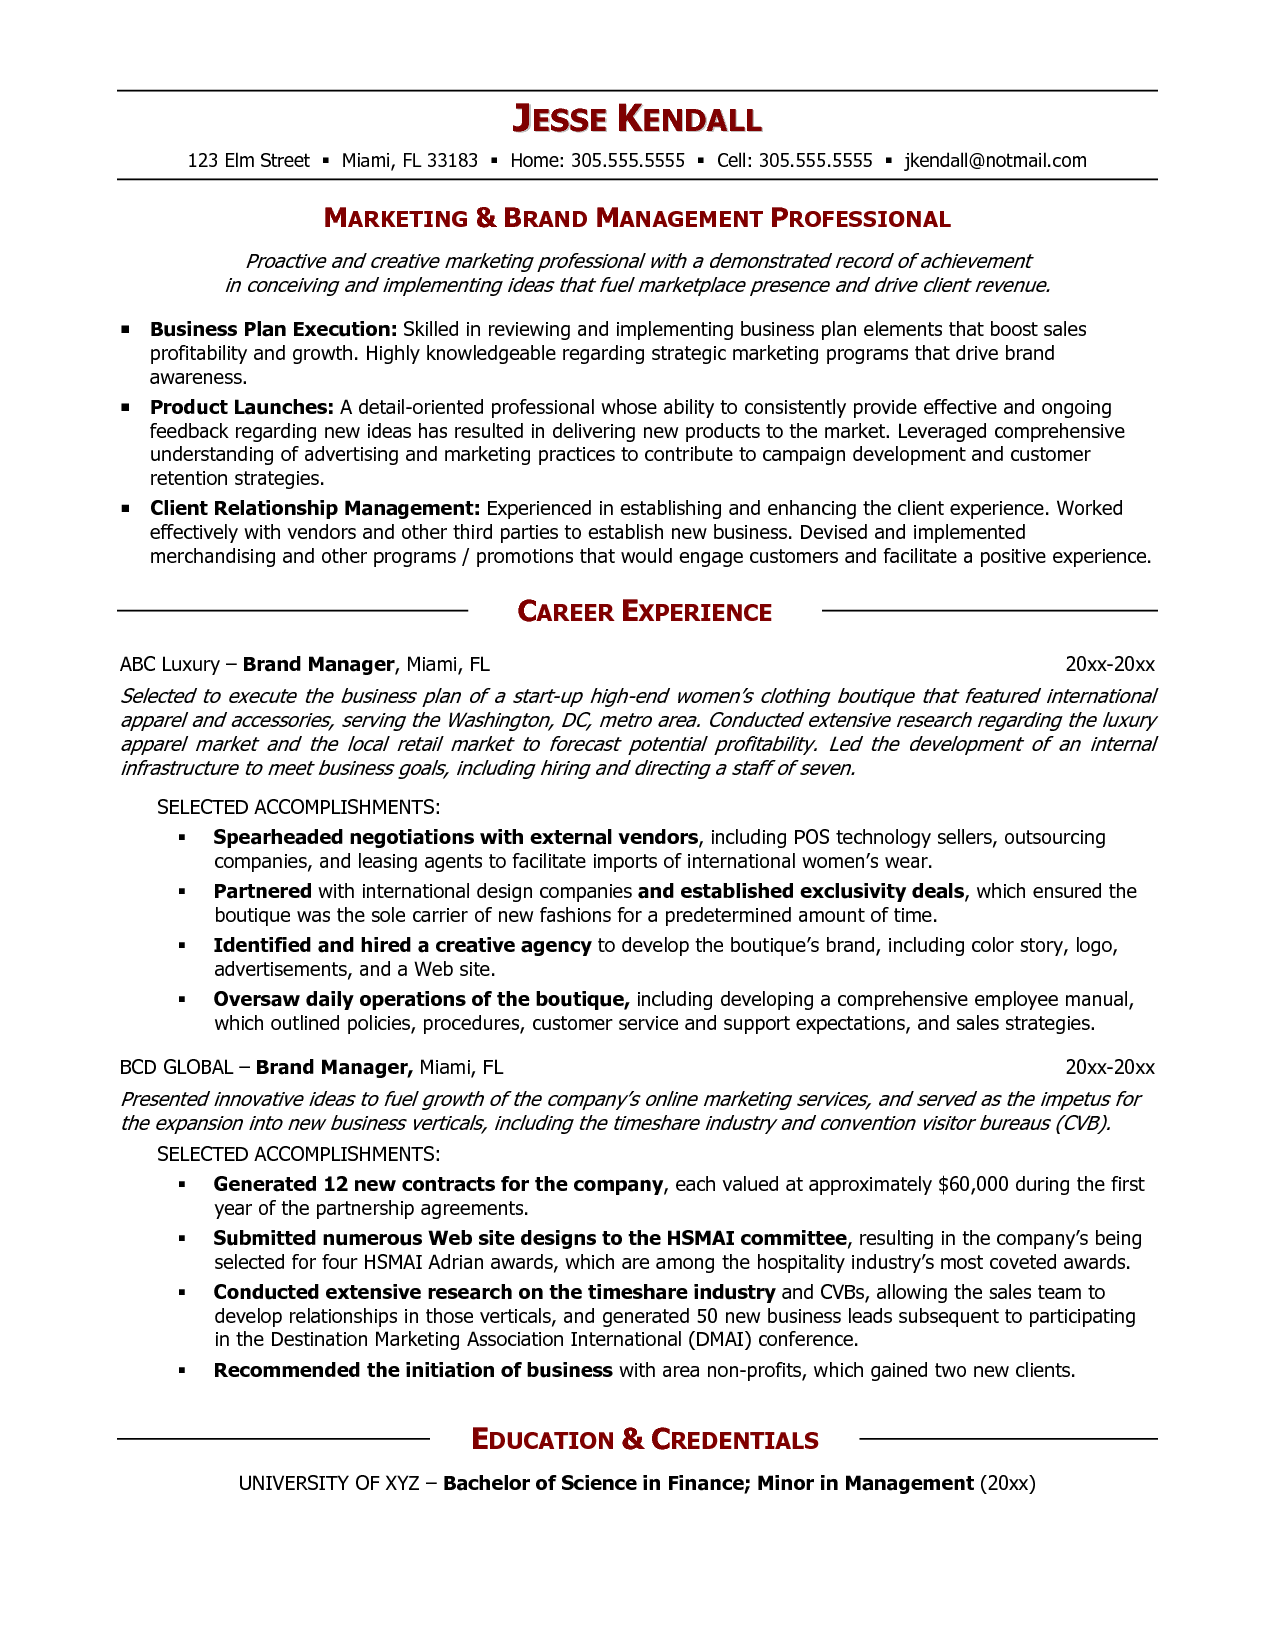 senior logistic management resume | Brand Manager Resume Example ...